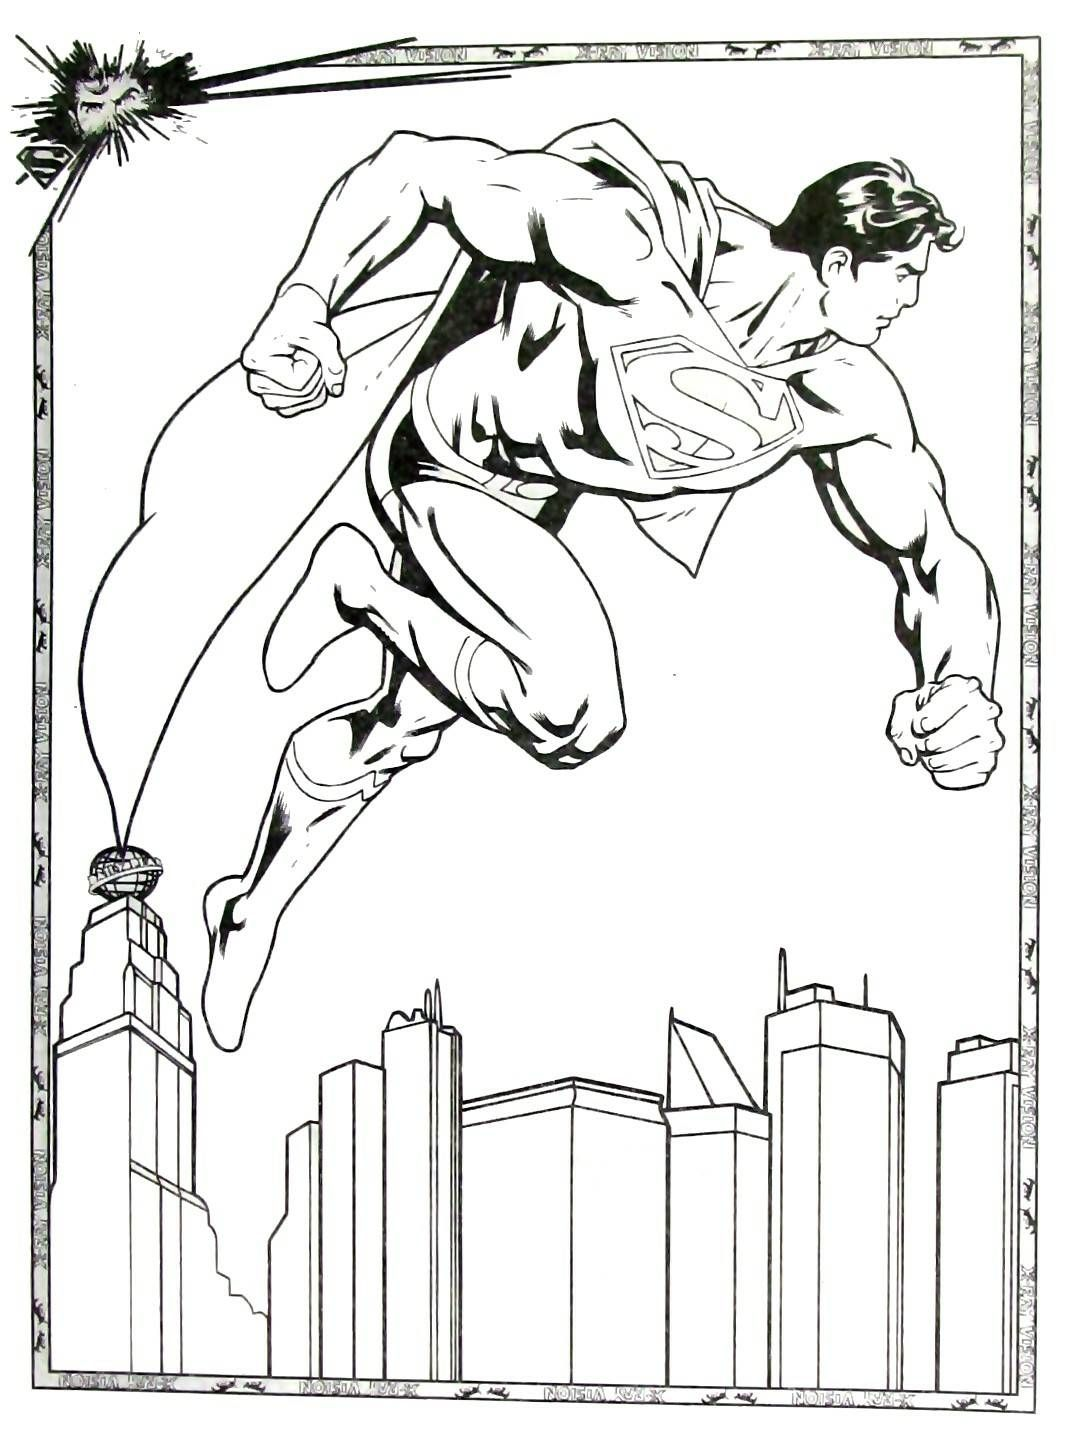 Superman Flying Coloring Book Page Printable Superman Coloring Art